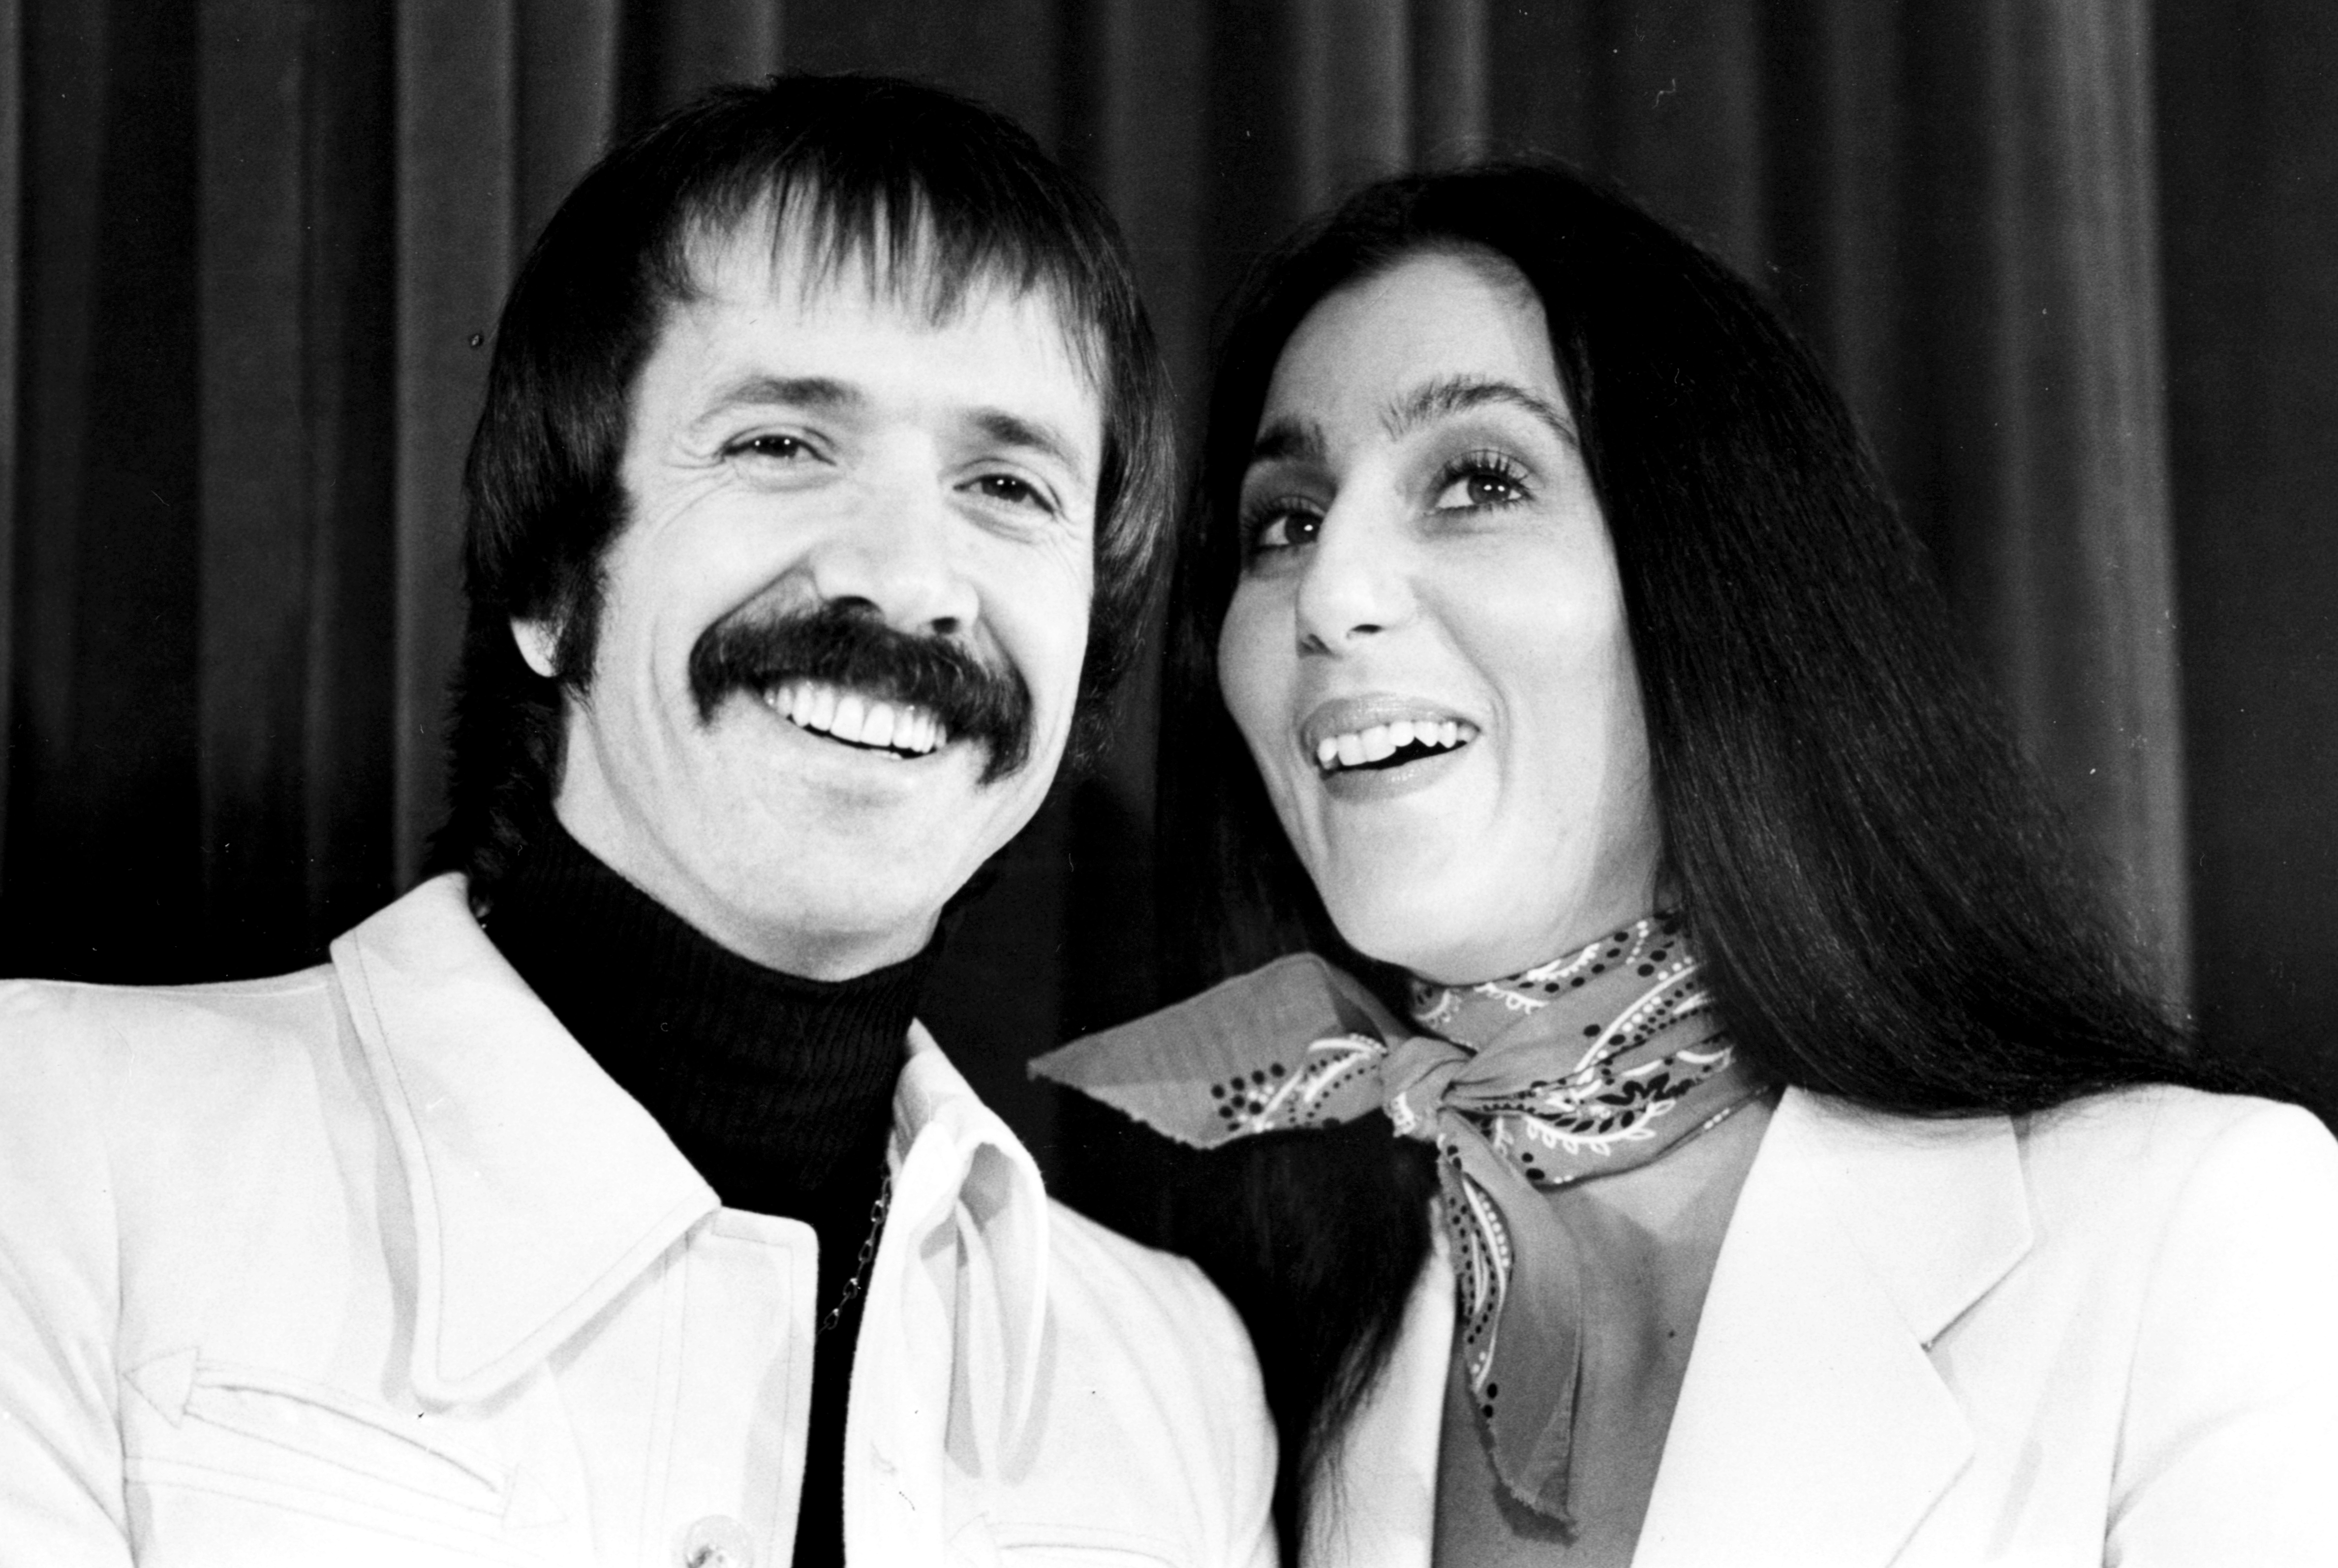 Cher Through The Years - The Sonny and Cher Show became the first-ever to star a divorced couple when it premiered. Their onscreen banter about their personal life in part led to the series' cancellation in August 1977.